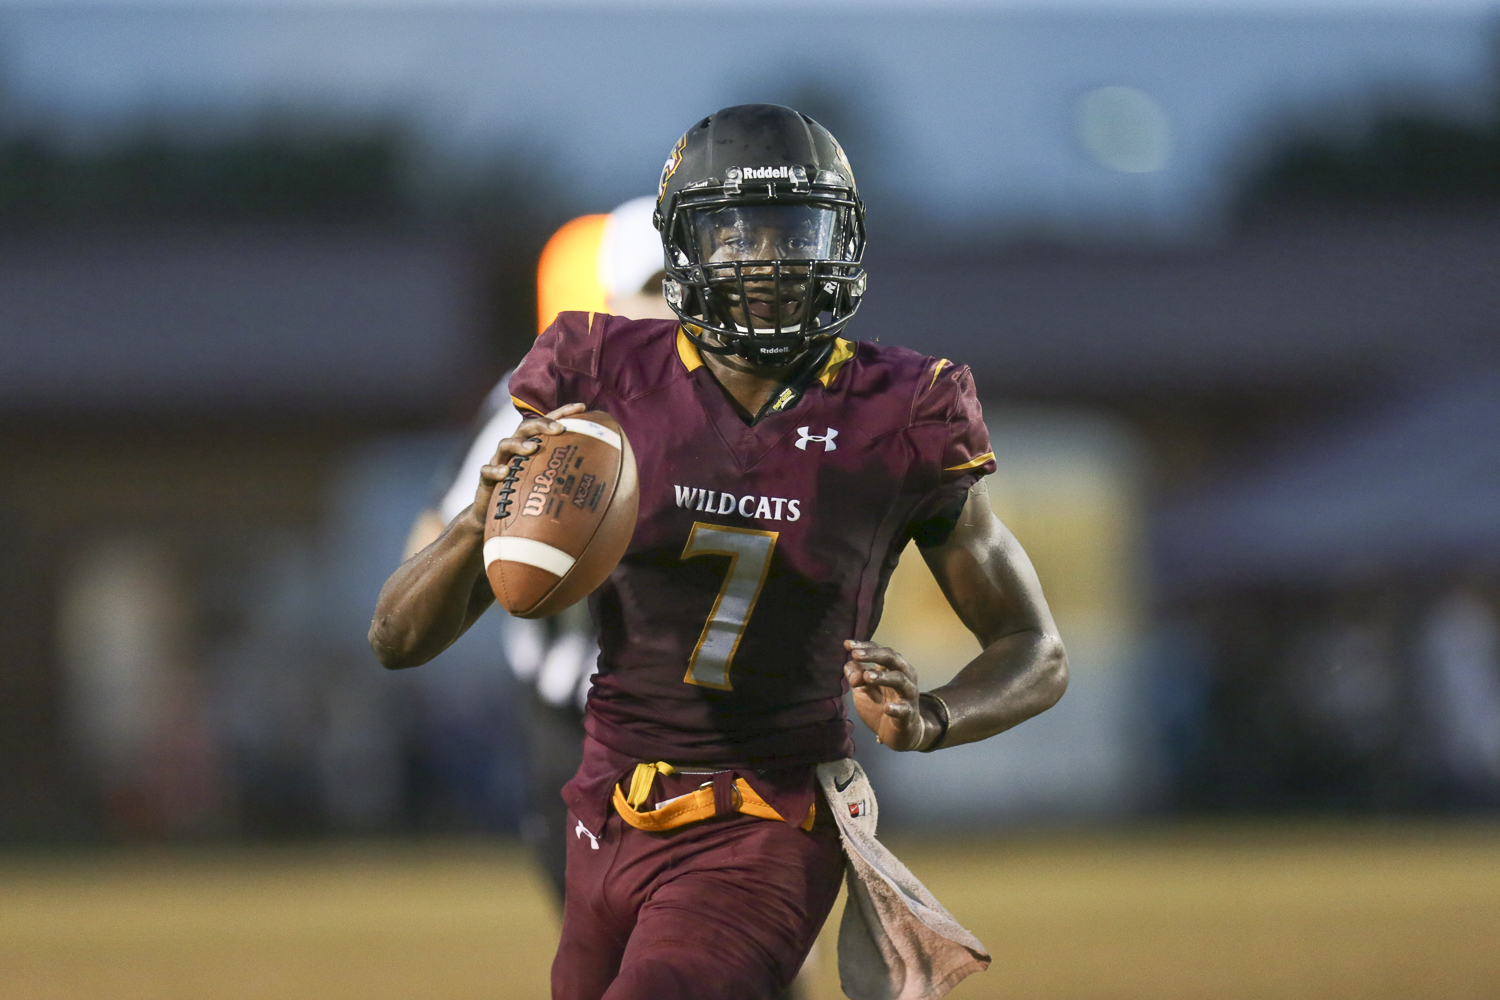 Pearl River out-scored visiting East Central 18-0 in the second half Thursday but fell to the No. 20 Warriors 24-21. (JUCOWEEKLY.ORG)